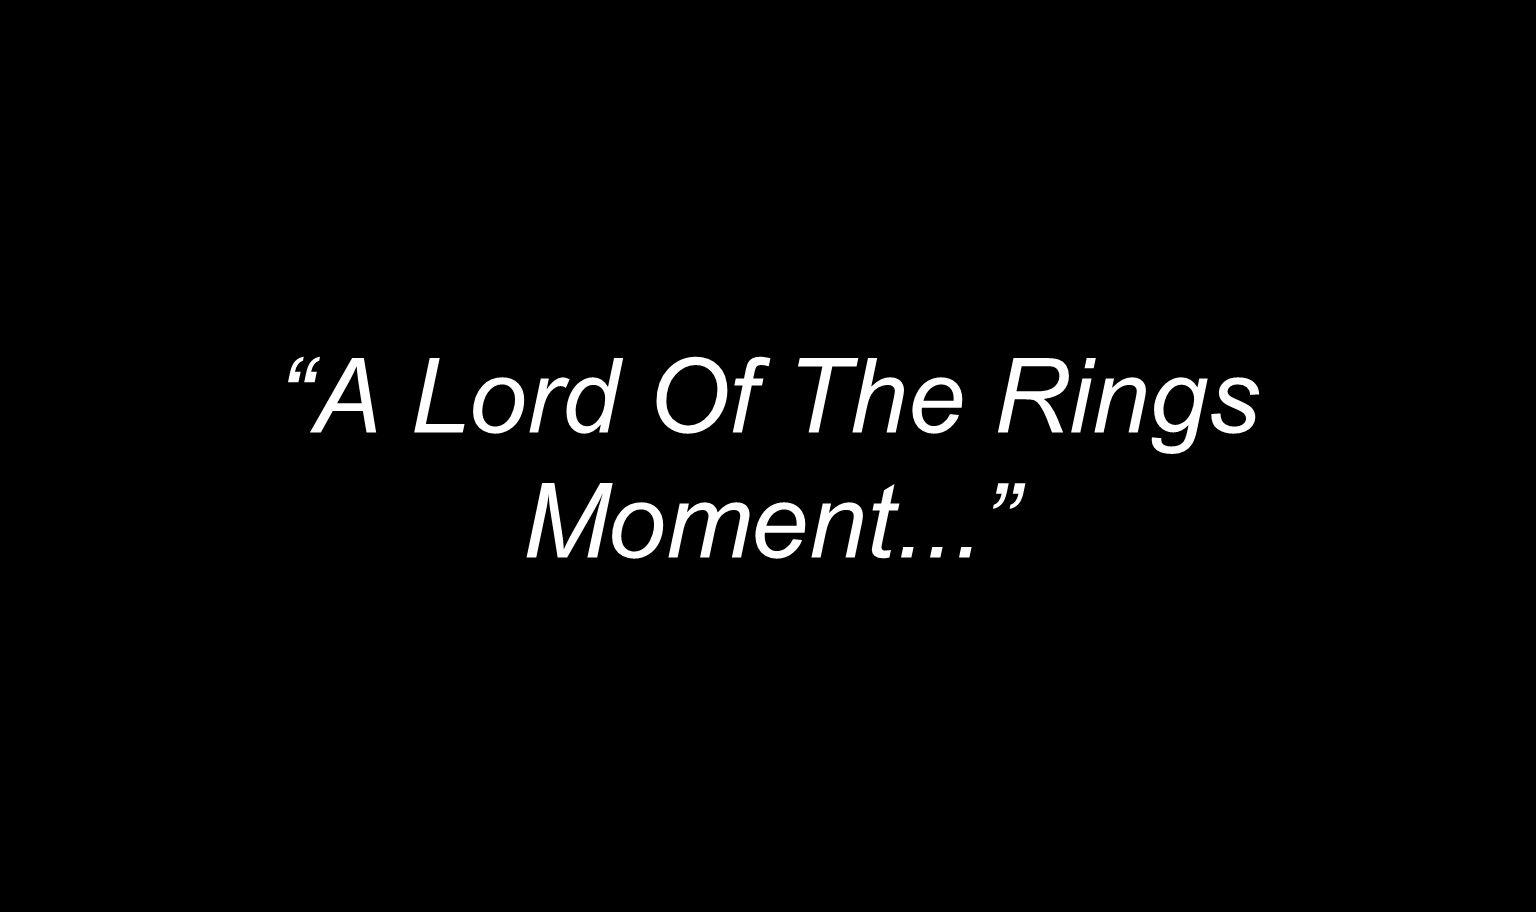 A Lord Of The Rings Moment...